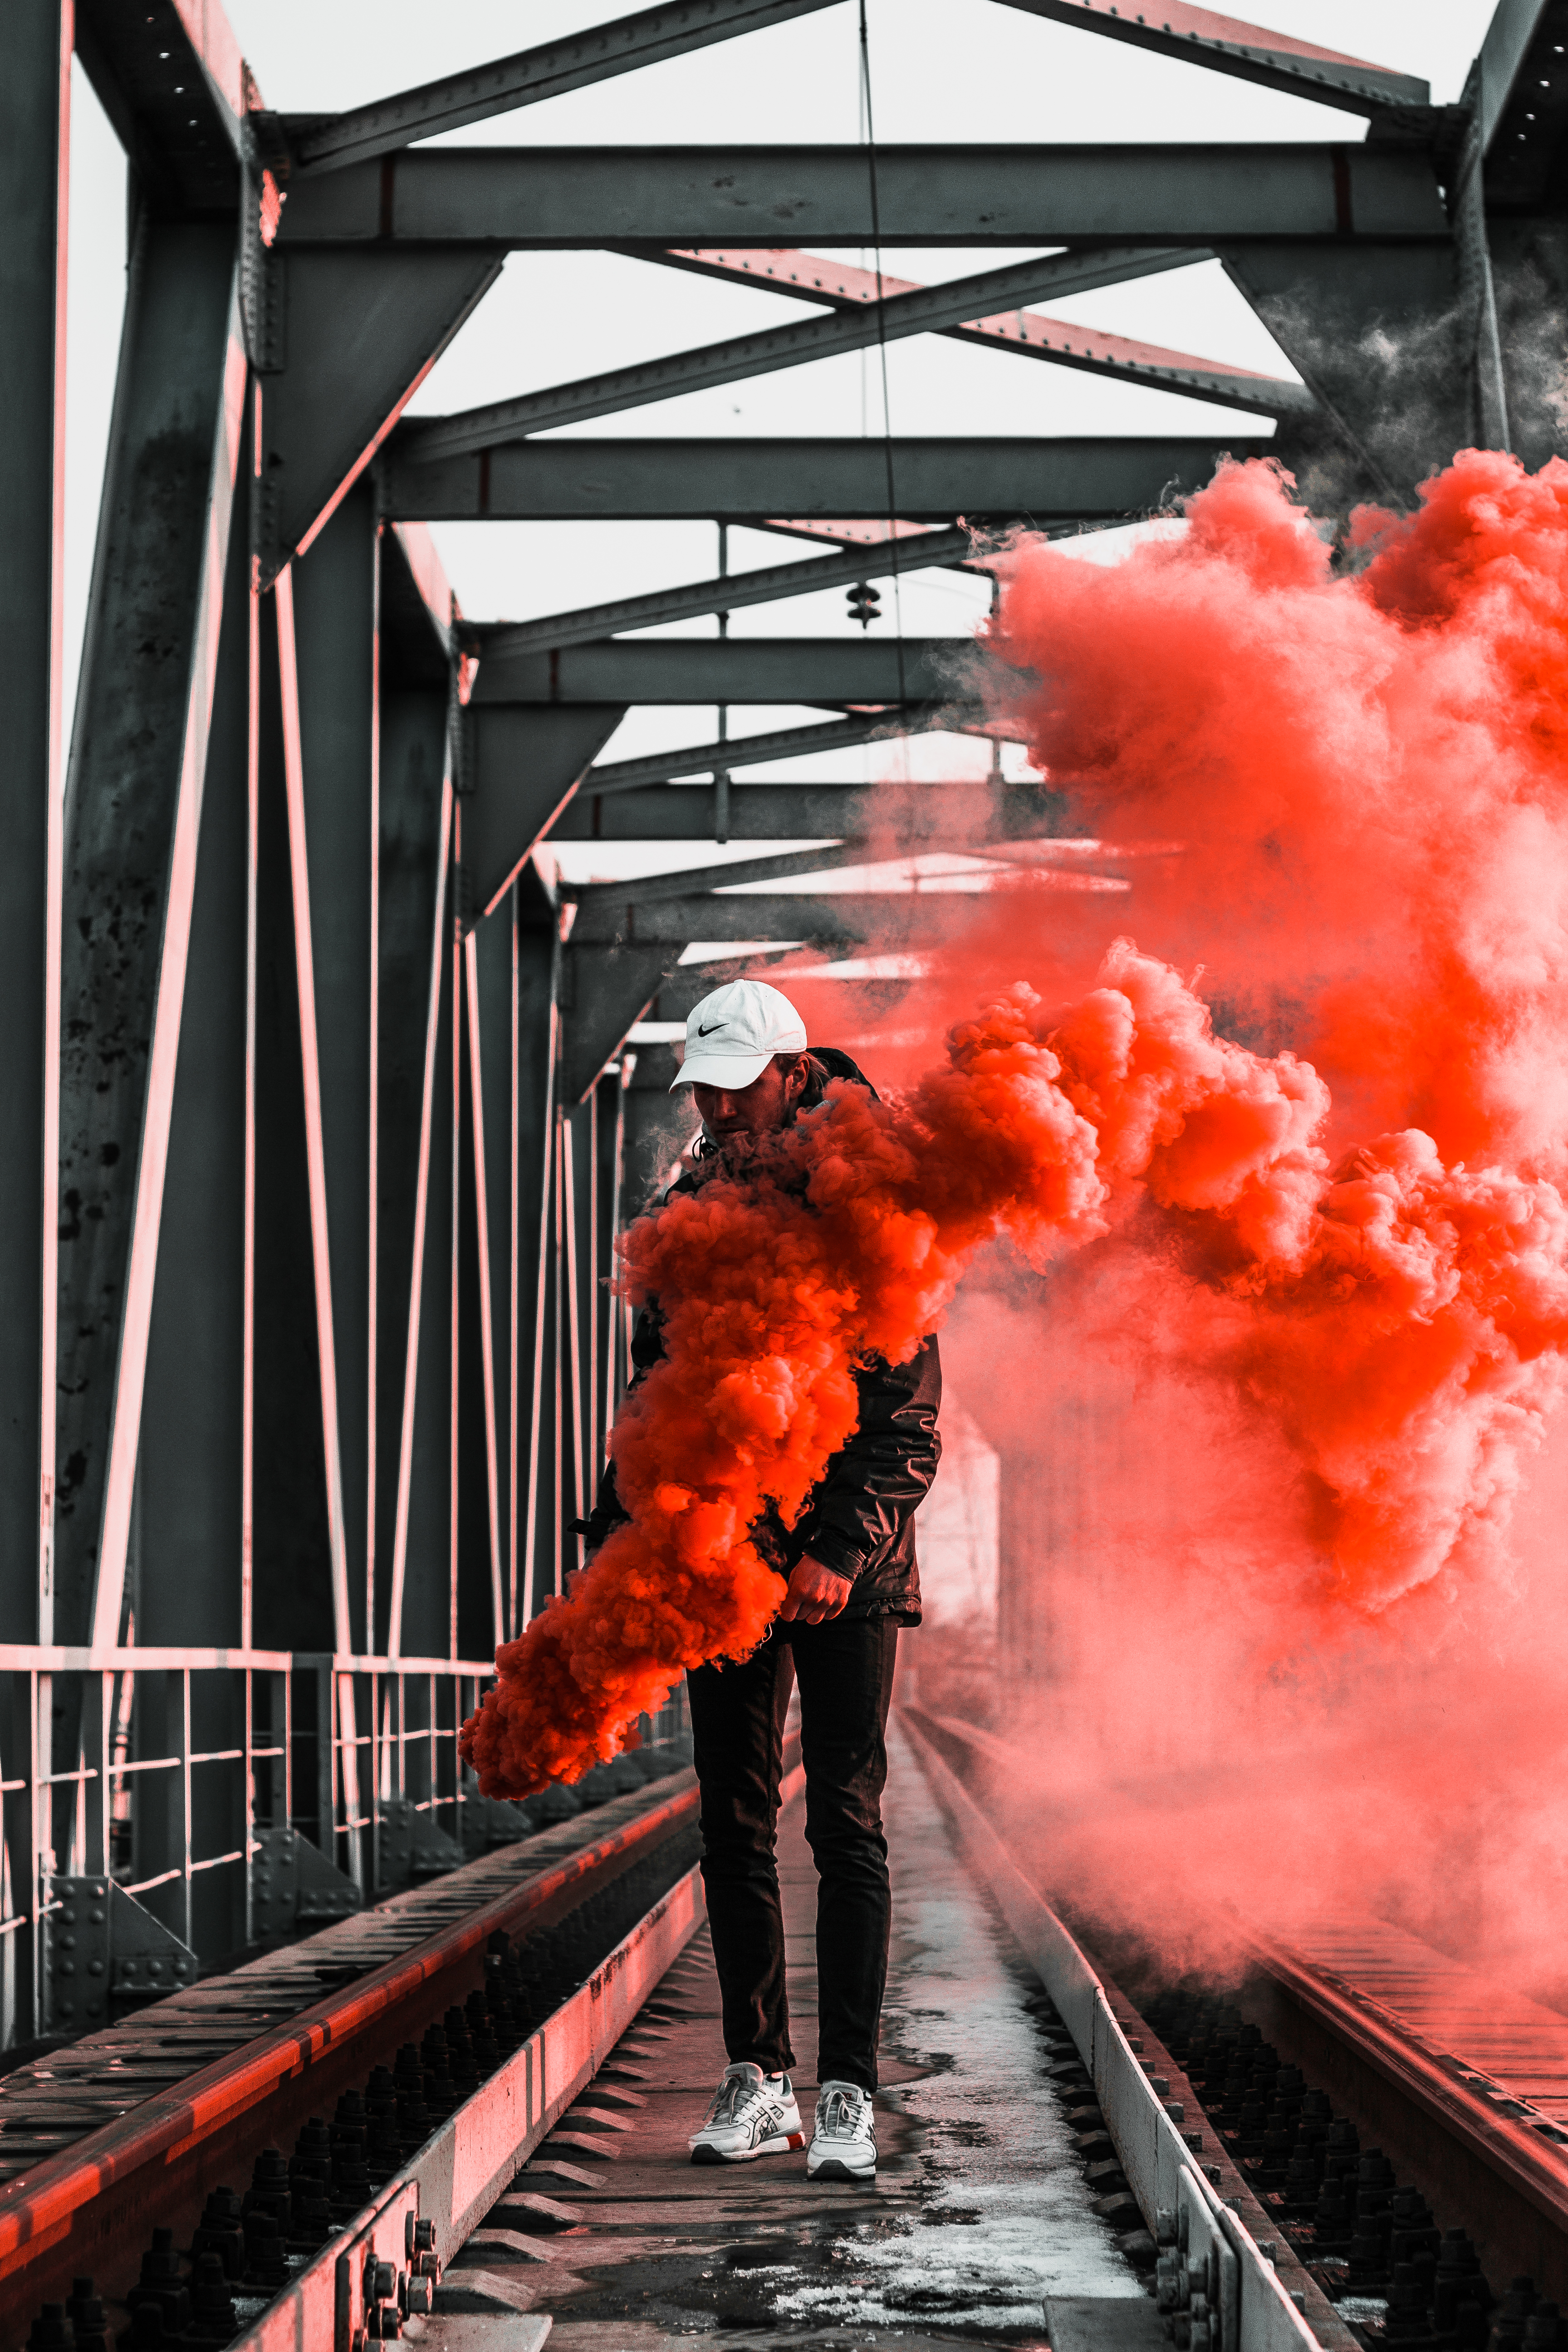 The Cars Wallpaper For Birthday Hooded Figure Holding Red Flare 183 Free Stock Photo